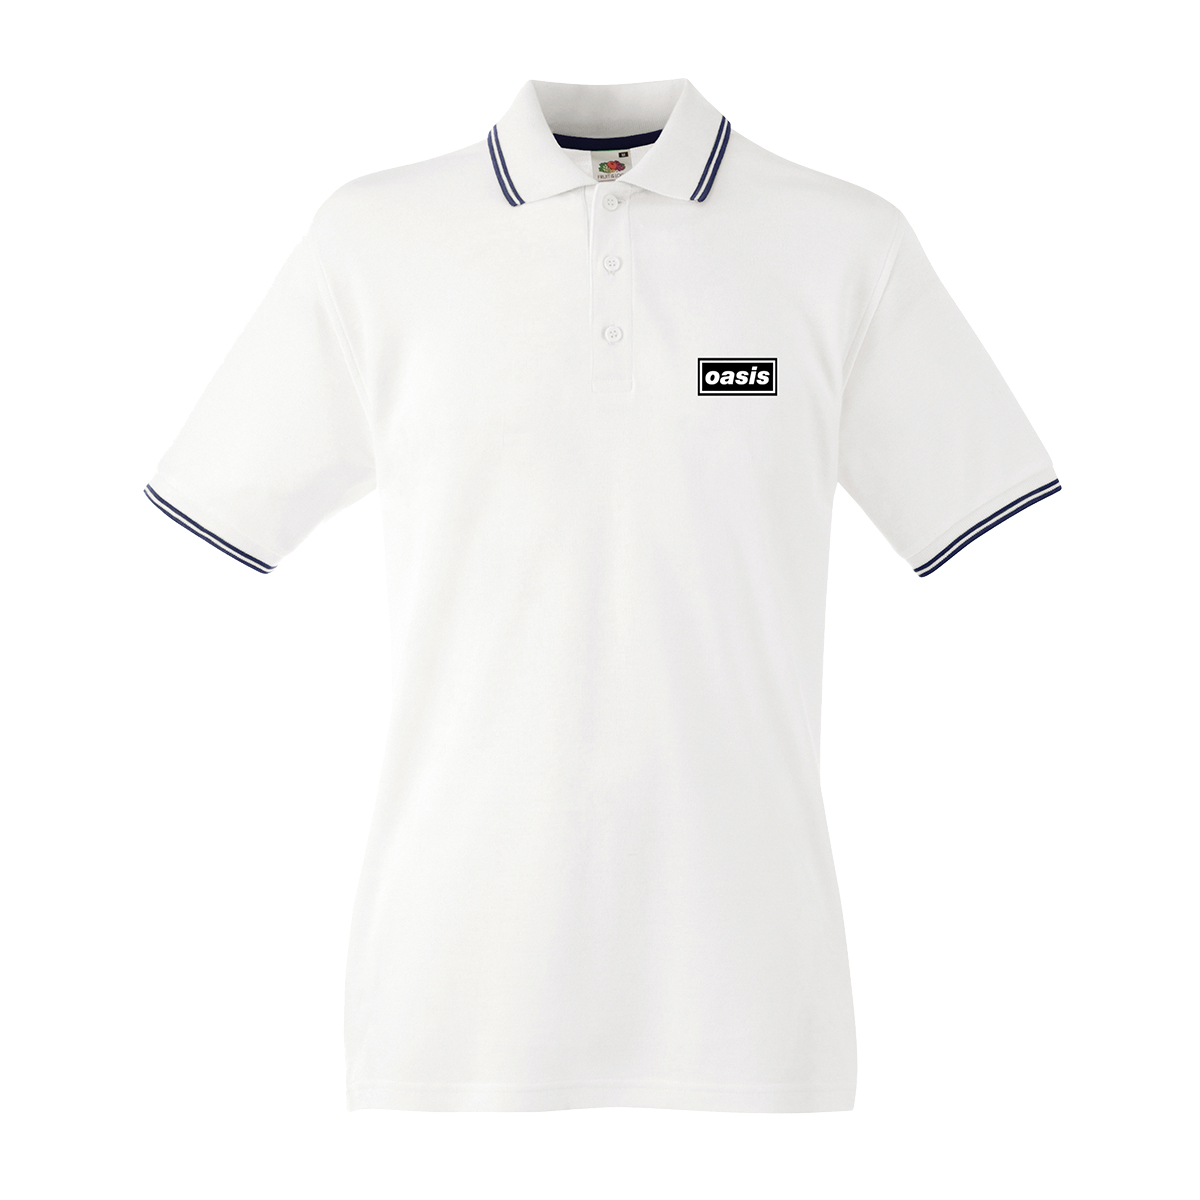 Buy Online Oasis - Oasis Replica Tour White Polo